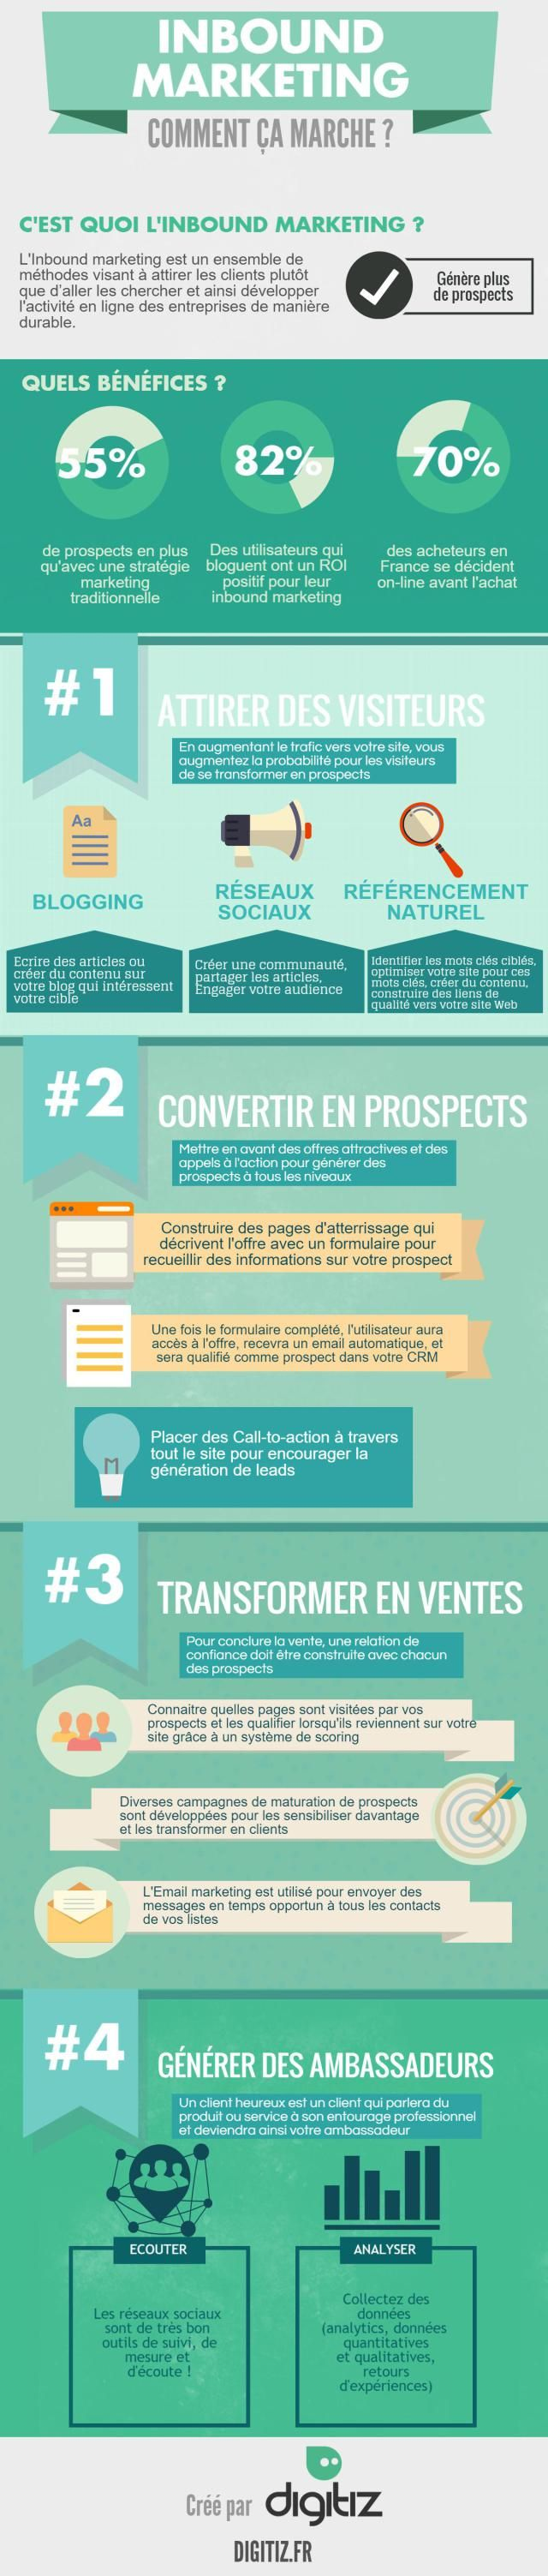 Infographie Inbound marketing                                                                                                                                                                                 Plus